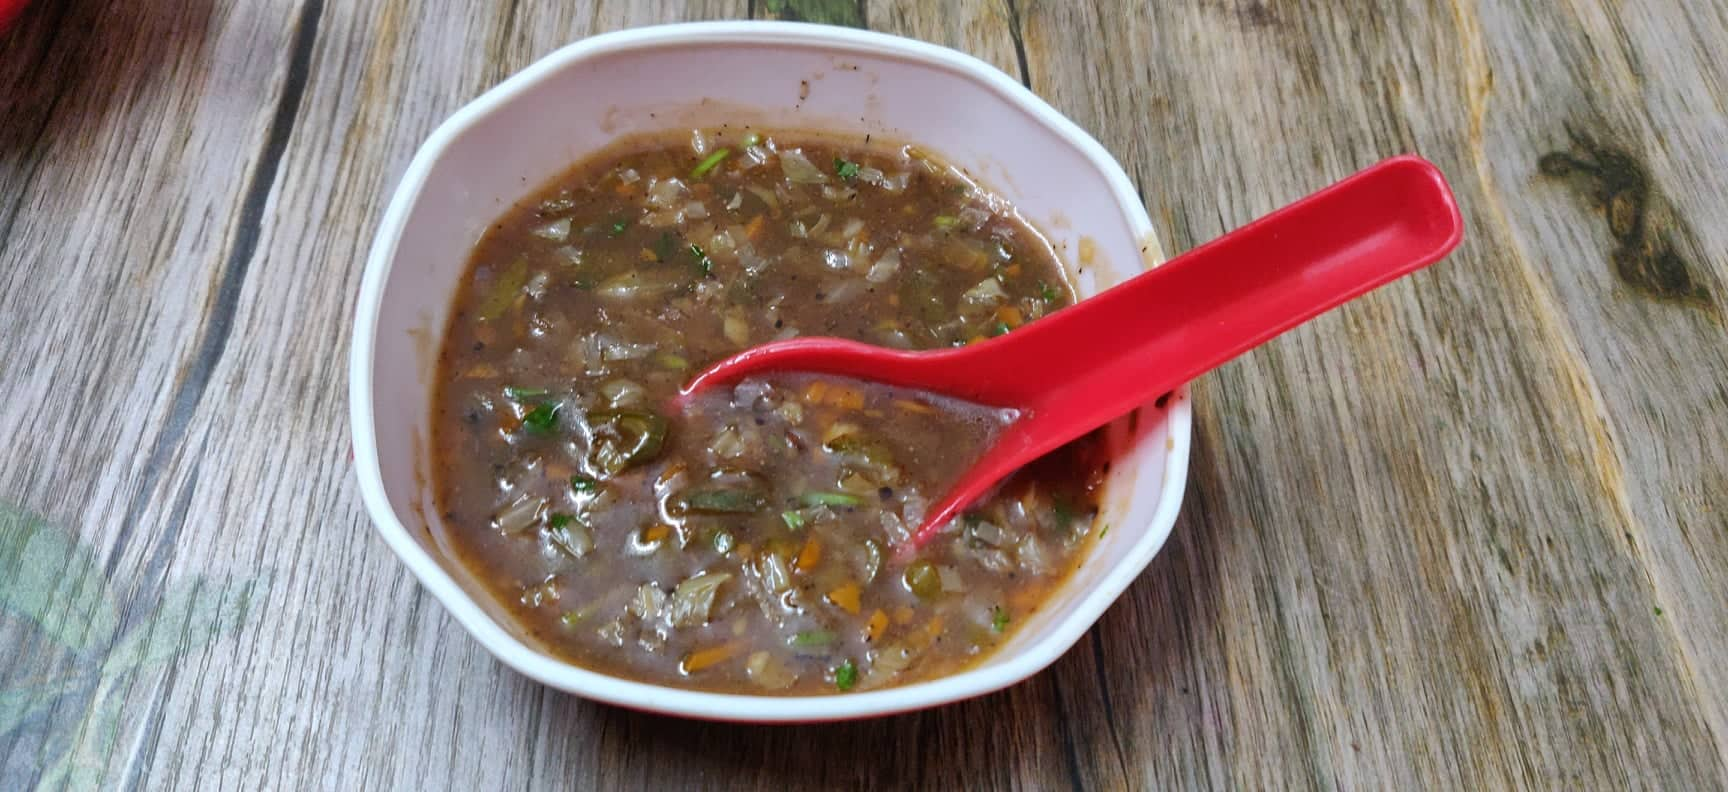 hot_and_sour_veg_soup - 75317271_1140253576185332_3971053983660769280_n